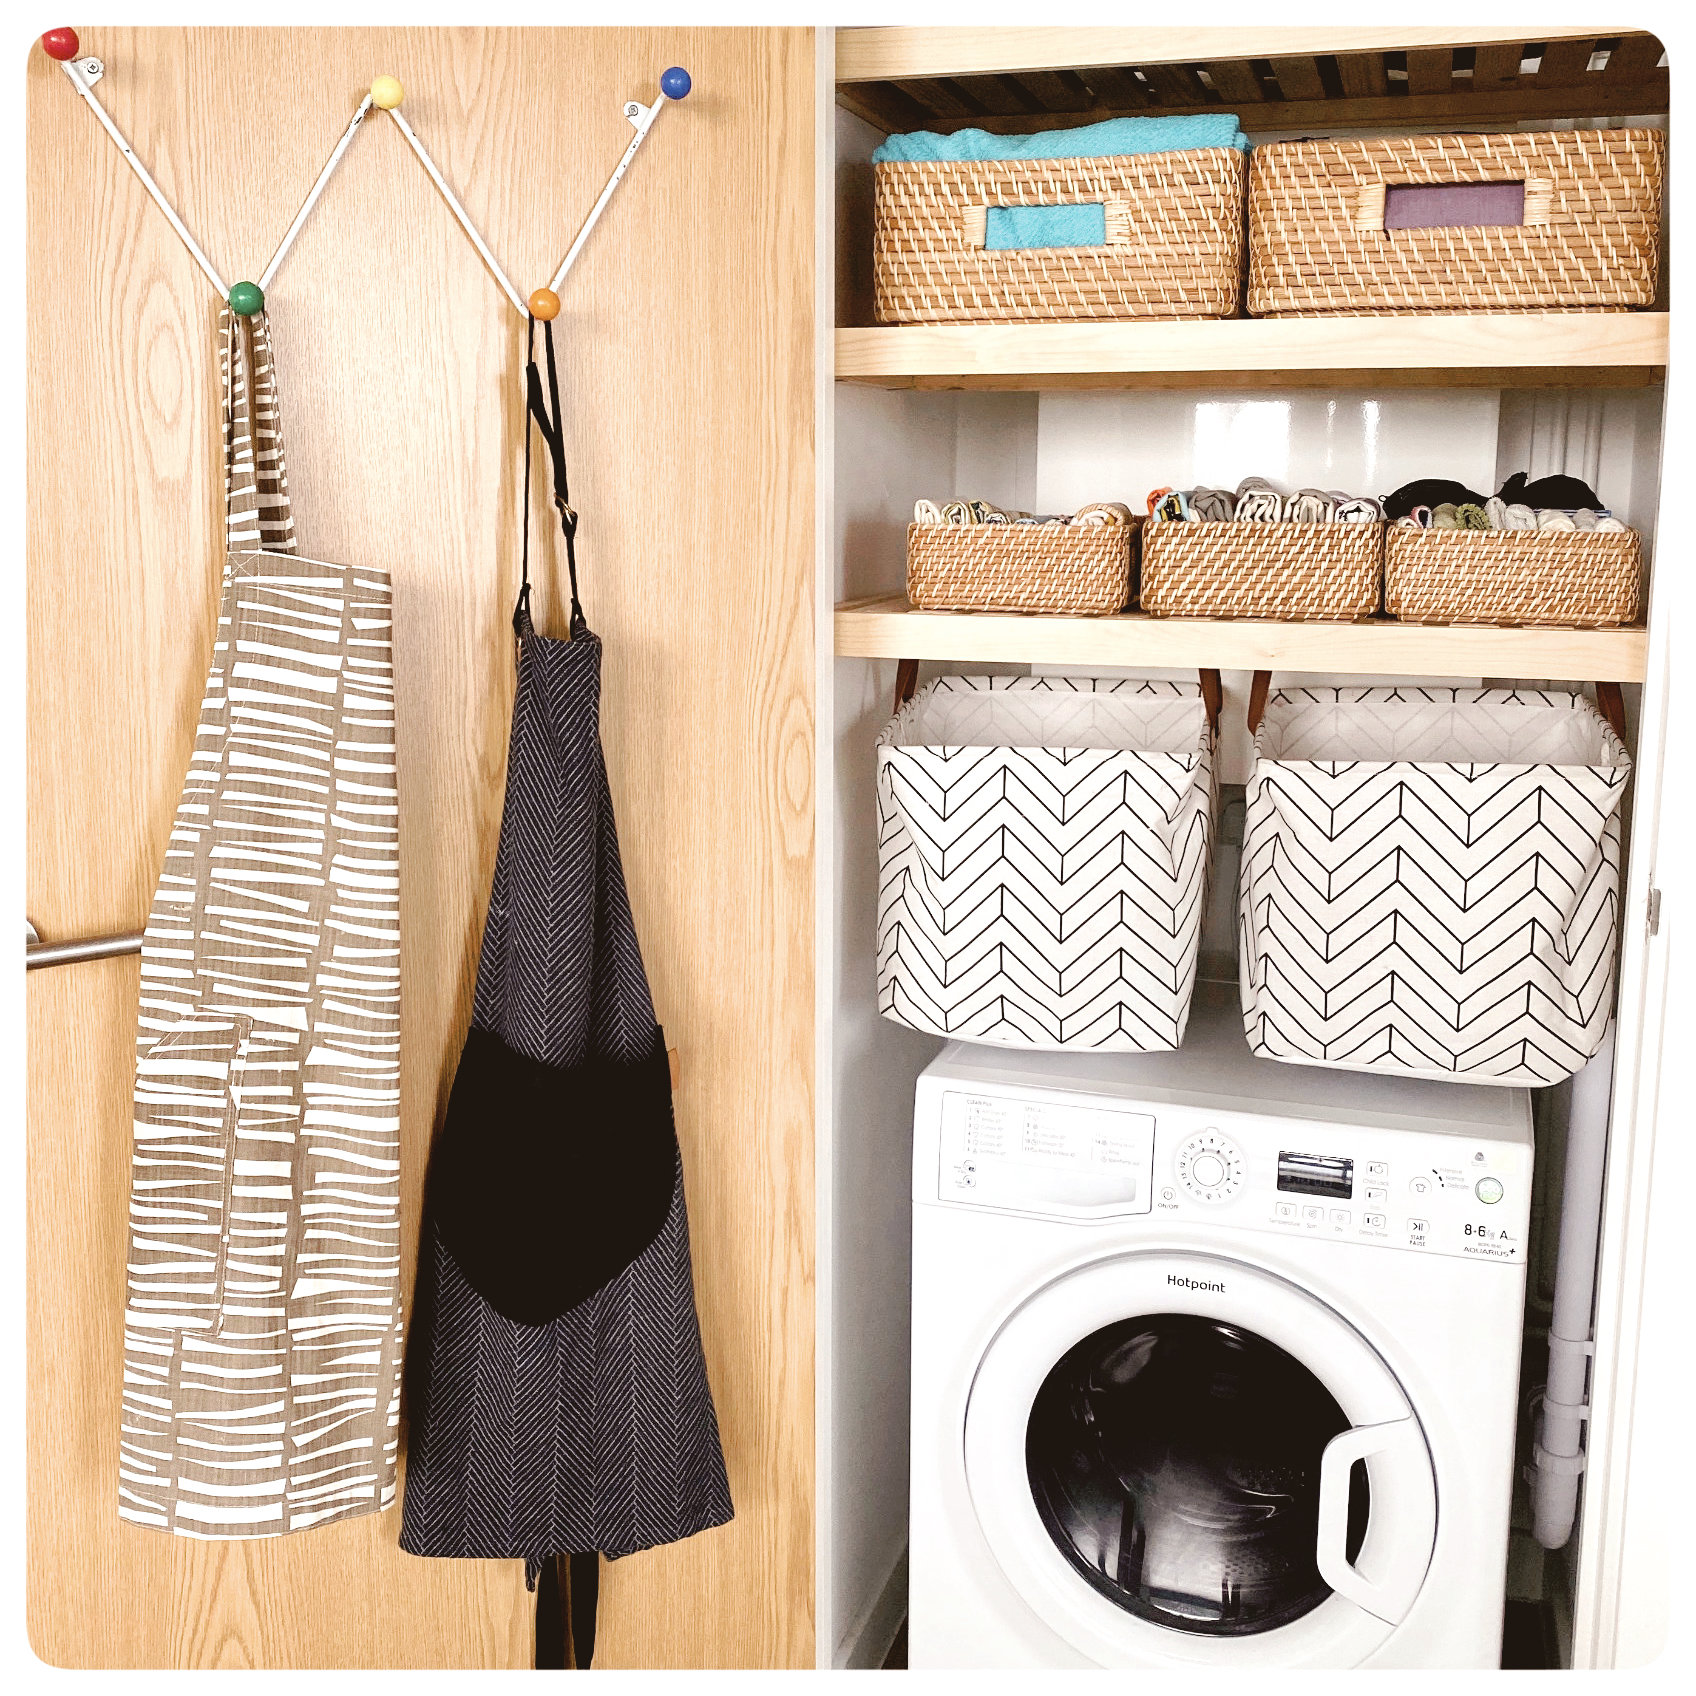 This Is A KonMari'd Closet That Sparks All The Joy. Neatly Folded Tea Towels In Bamboo Baskets, Fabric Baskets & Jazzy Aprons